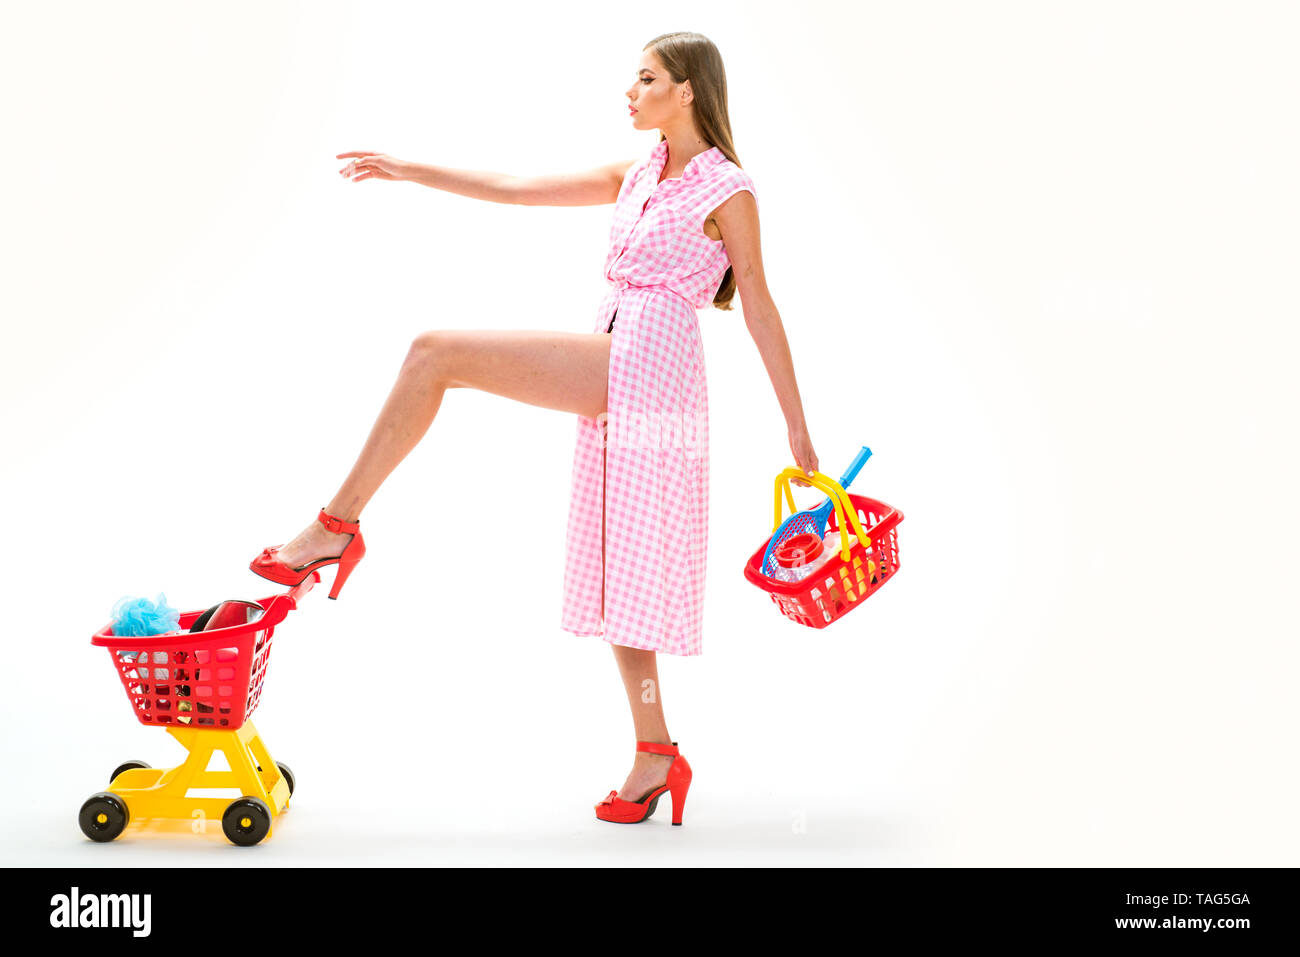 Heavy bags. Easy and fast. vintage housewife woman isolated on white. shopping girl with full cart. woman going to make payment in supermarket. retro  Stock Photo